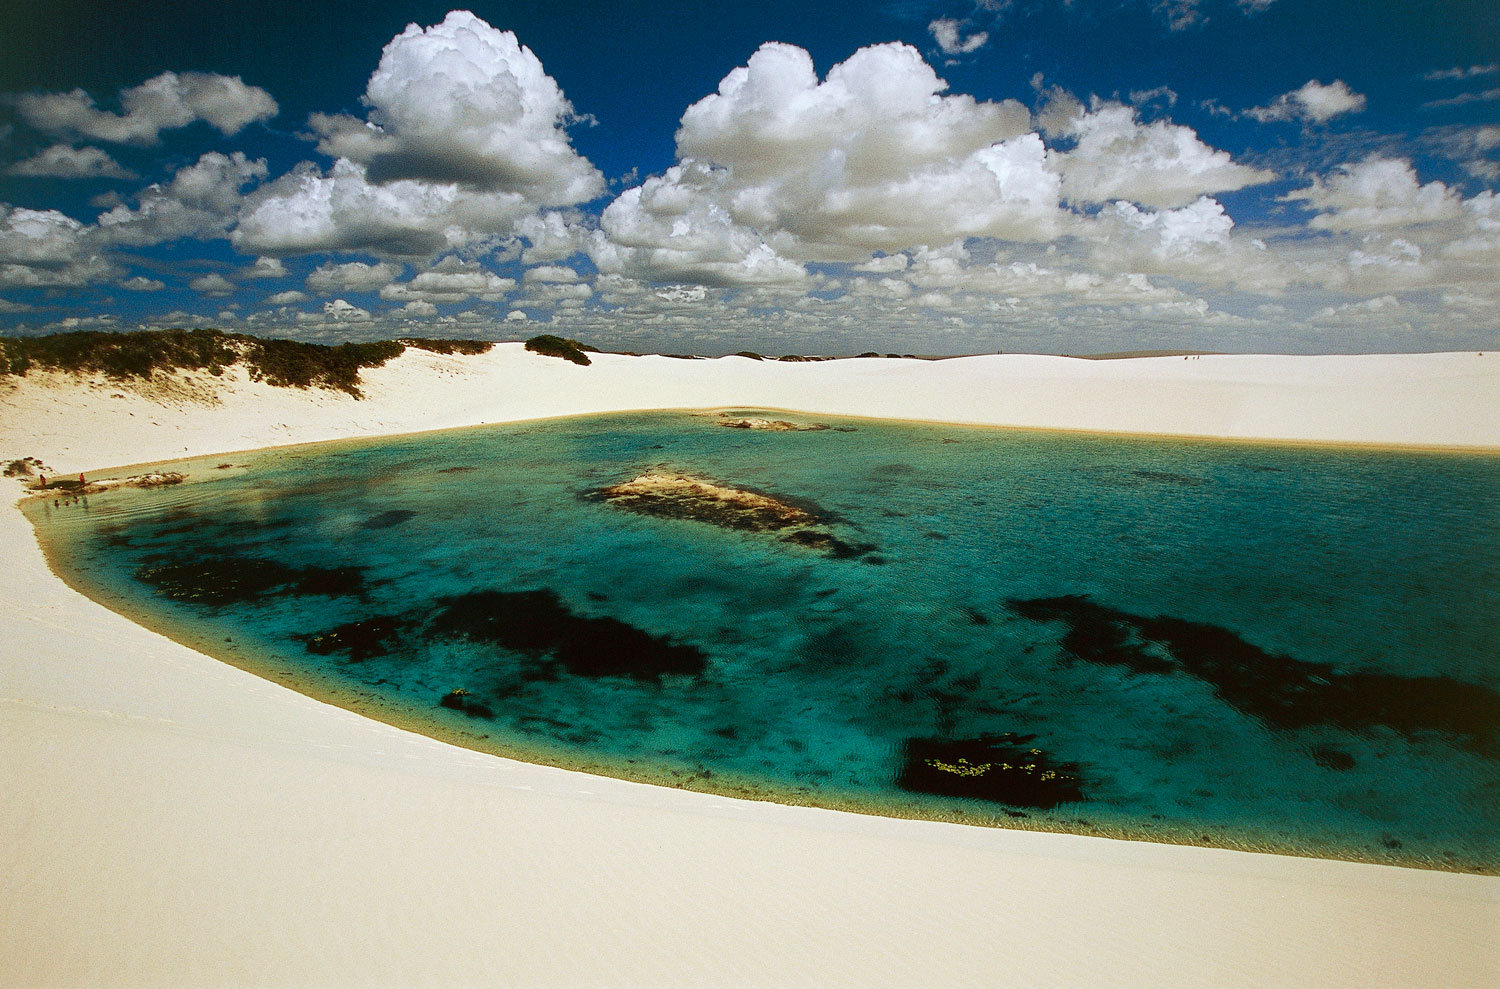 """The Lencois Maranhenses National Park received its                                Portuguese name, meaning """"the bedsheets of Maranhao,"""" from its famous white sand dunes, but the region keeps a bit of color thanks to the blue waters in between the dunes and the beautiful tropical fish that swim there."""